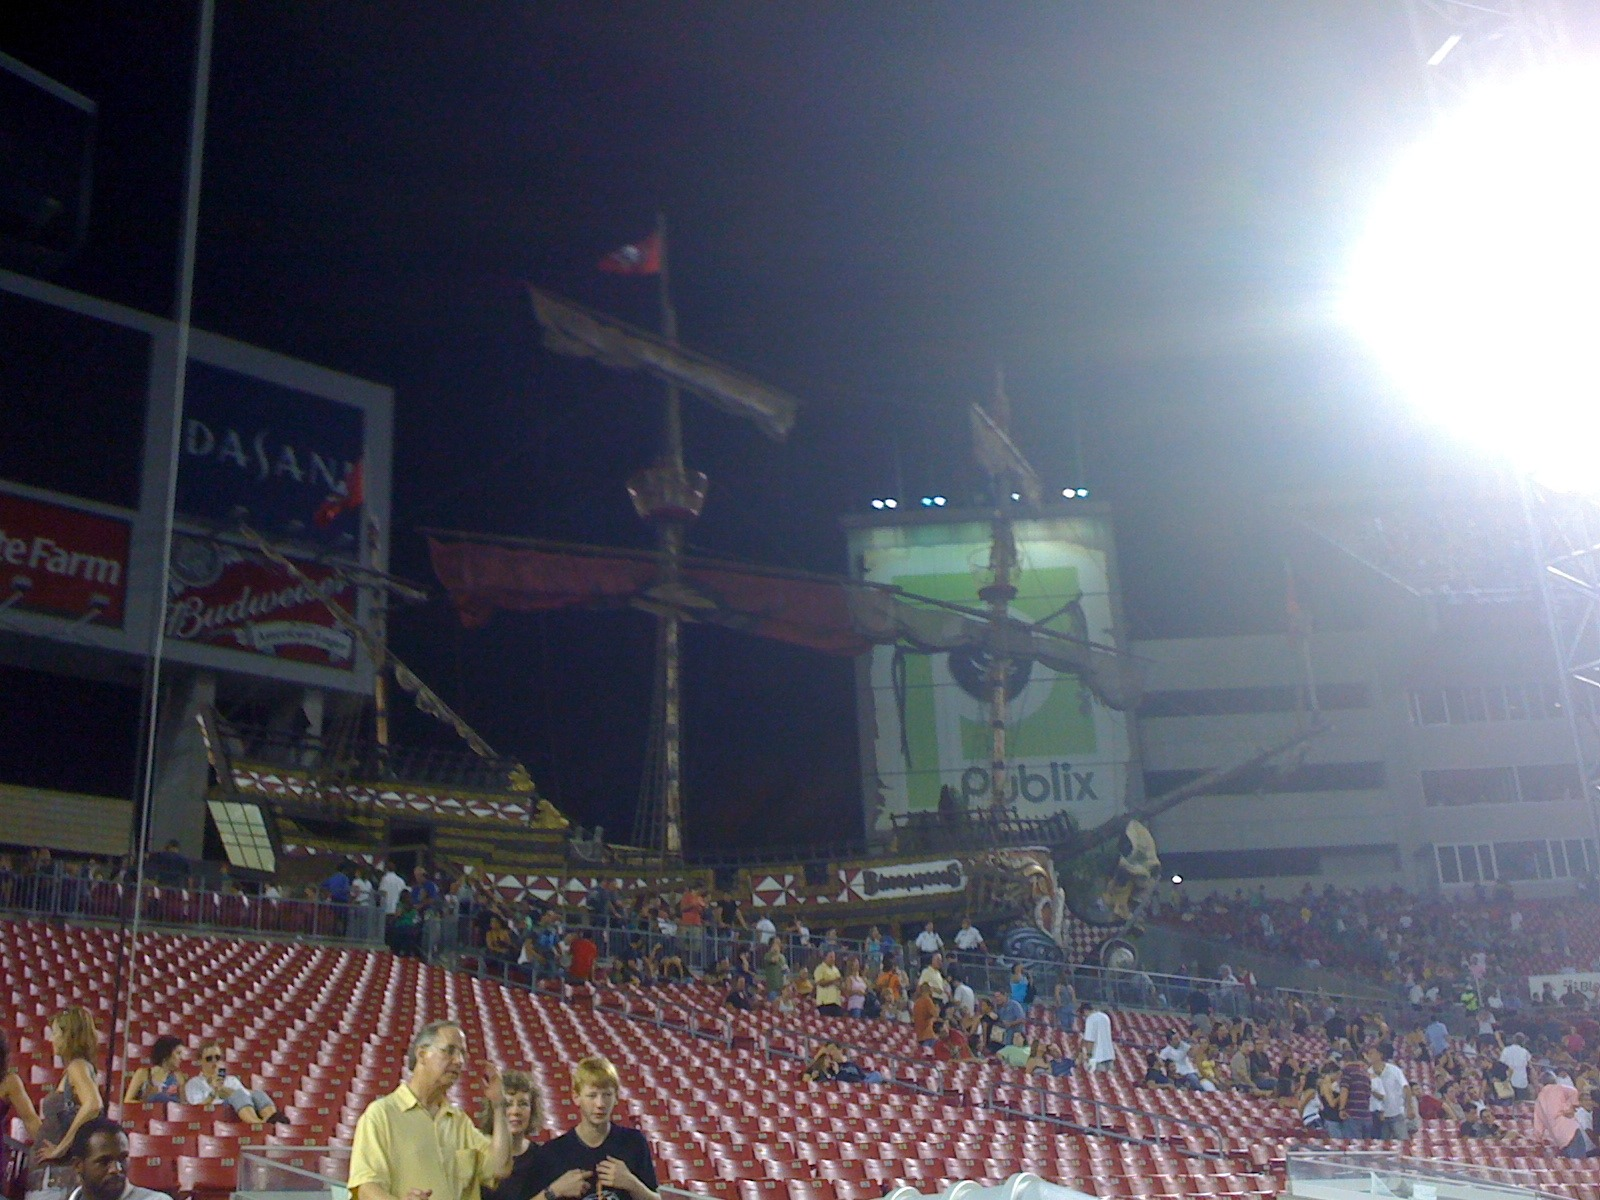 The Tampa Pirate Ship